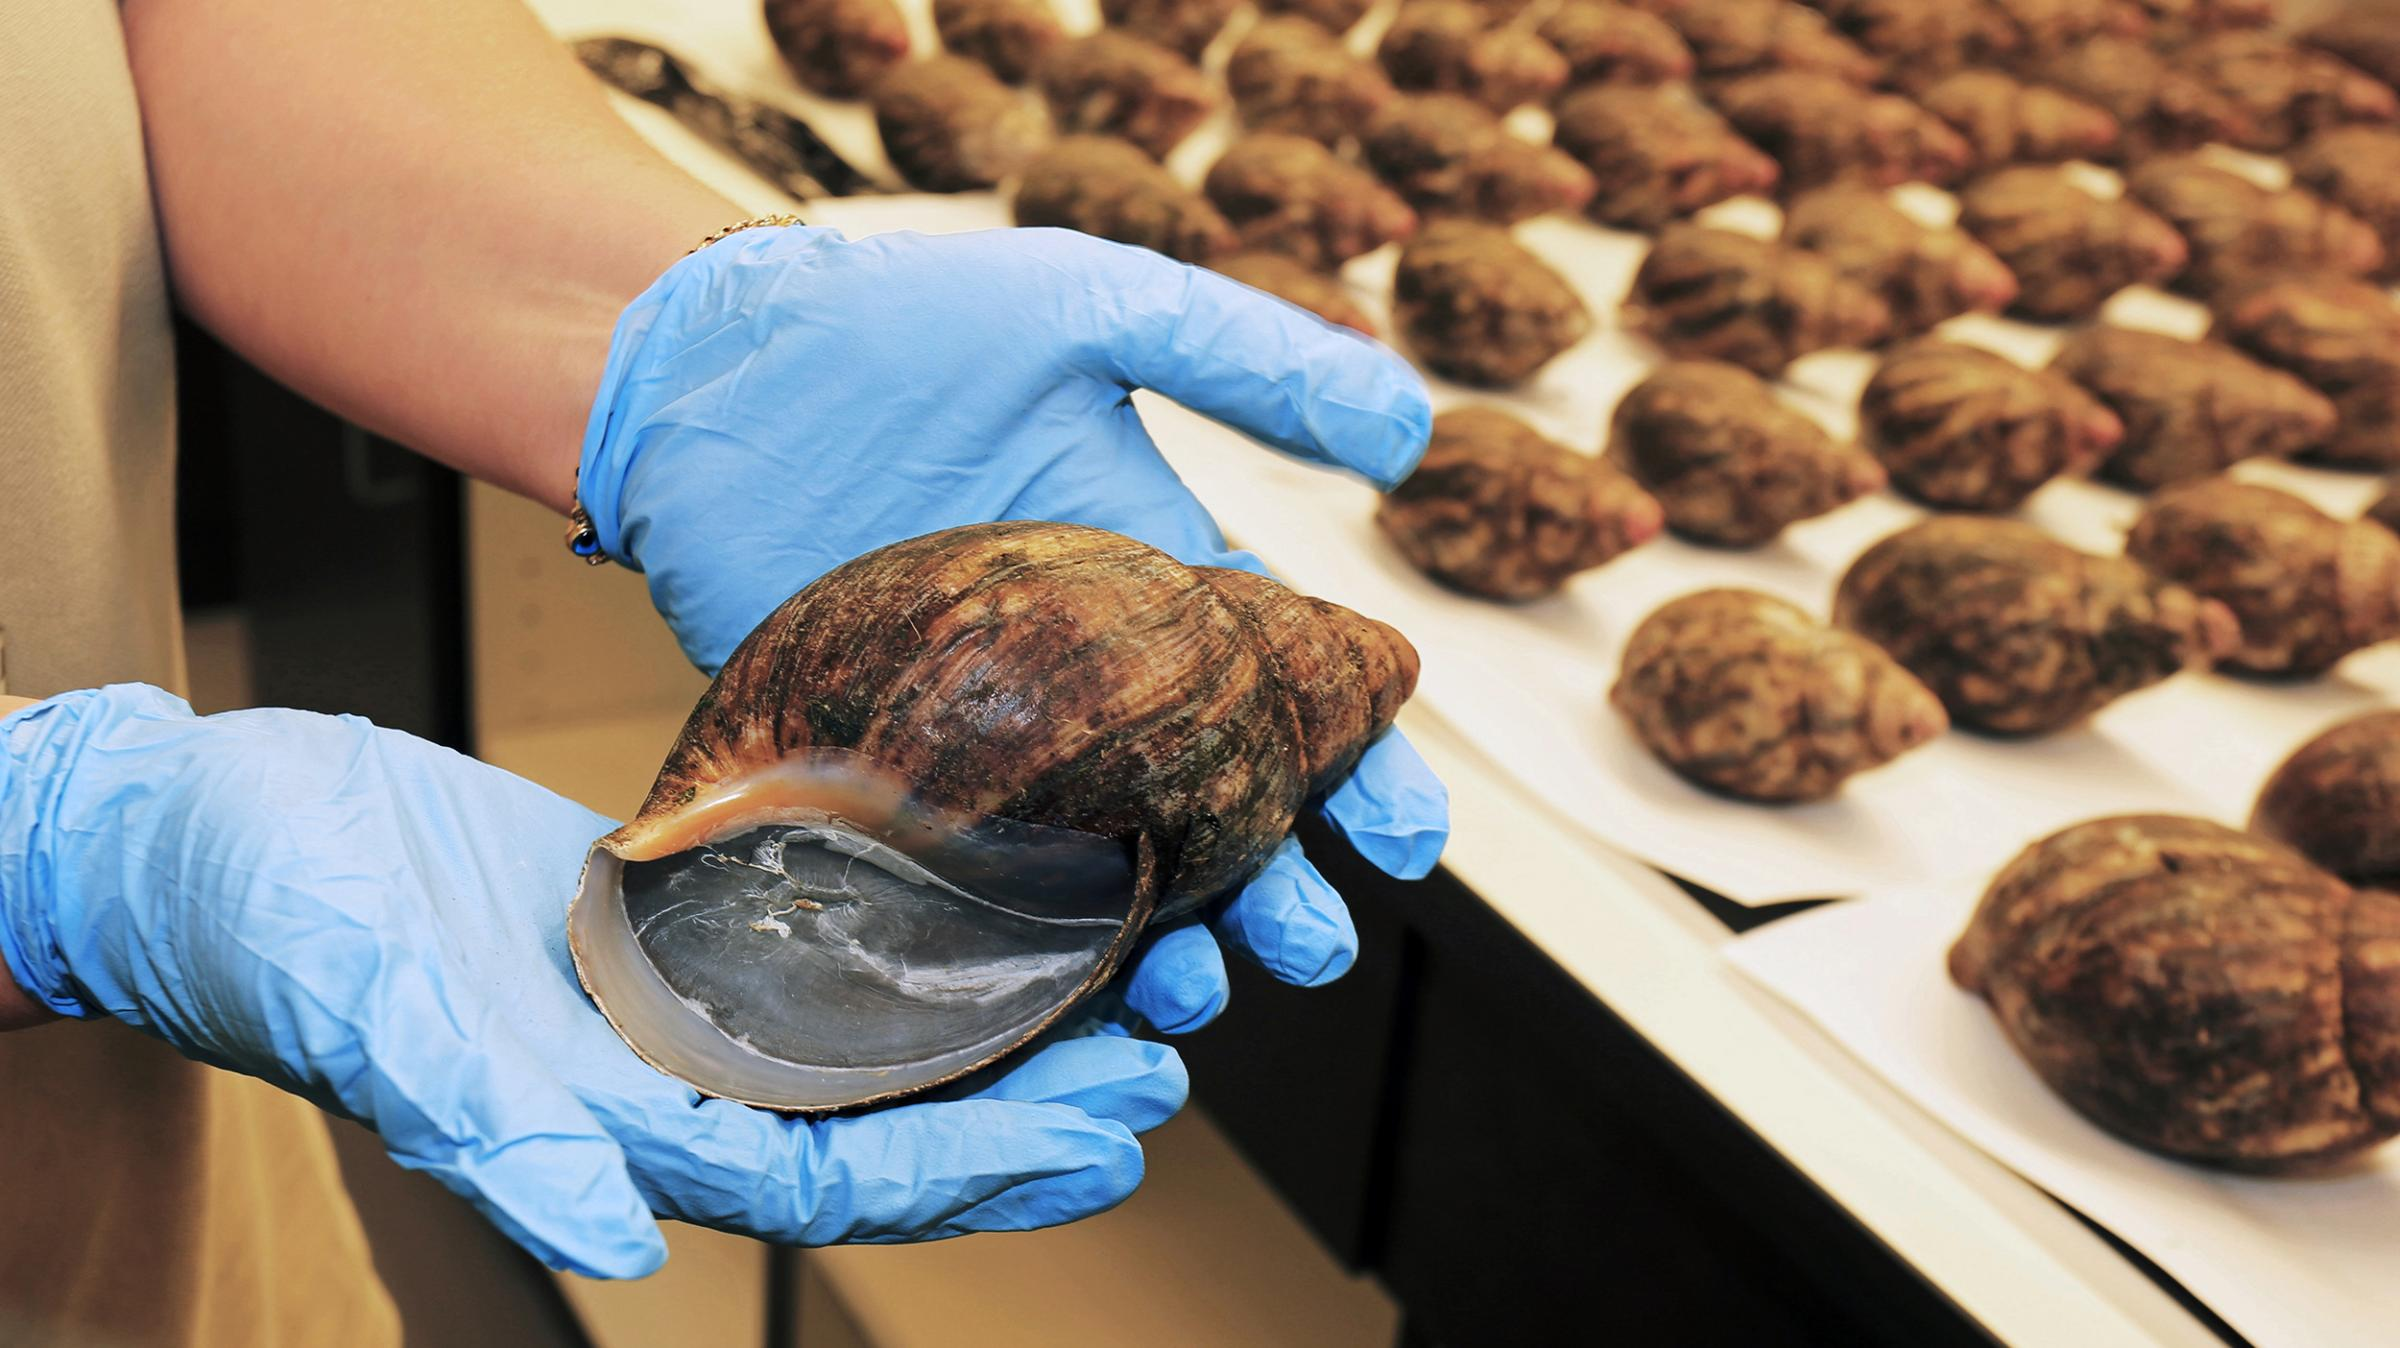 View Slideshow 1 of 2 & U.S. Customs Seize Giant African Snails Bound For Dinner Plates ...